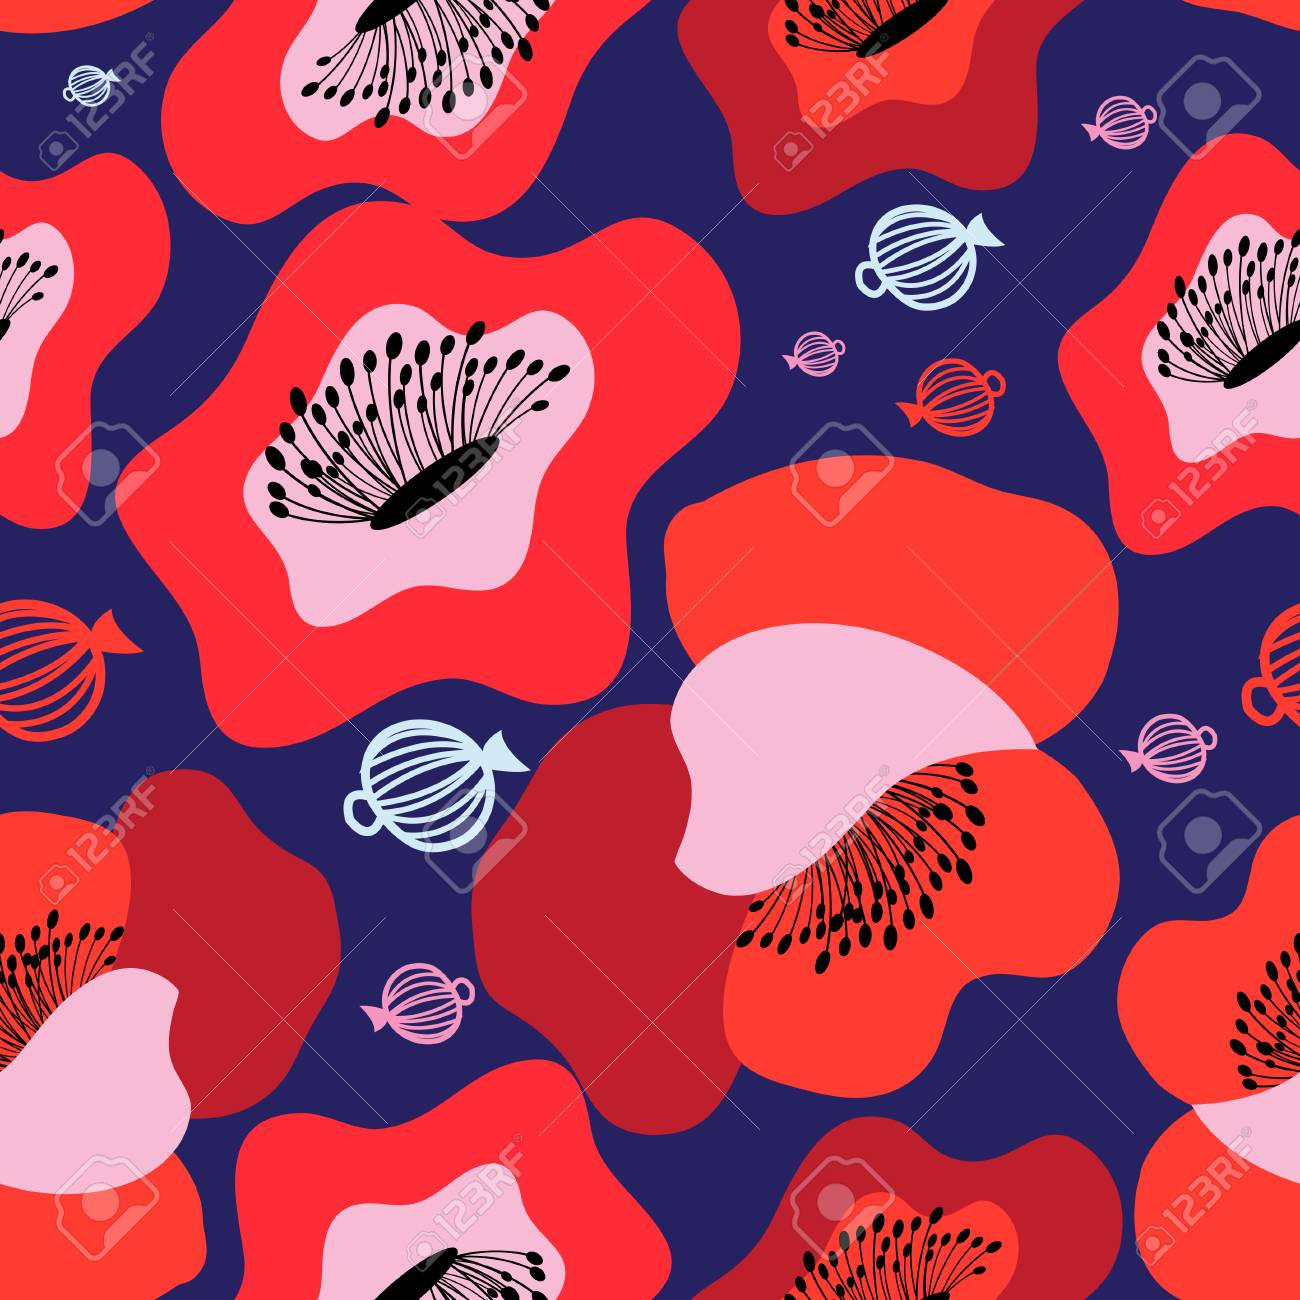 Vector seamless bright pattern of red poppies on blue - 98680652